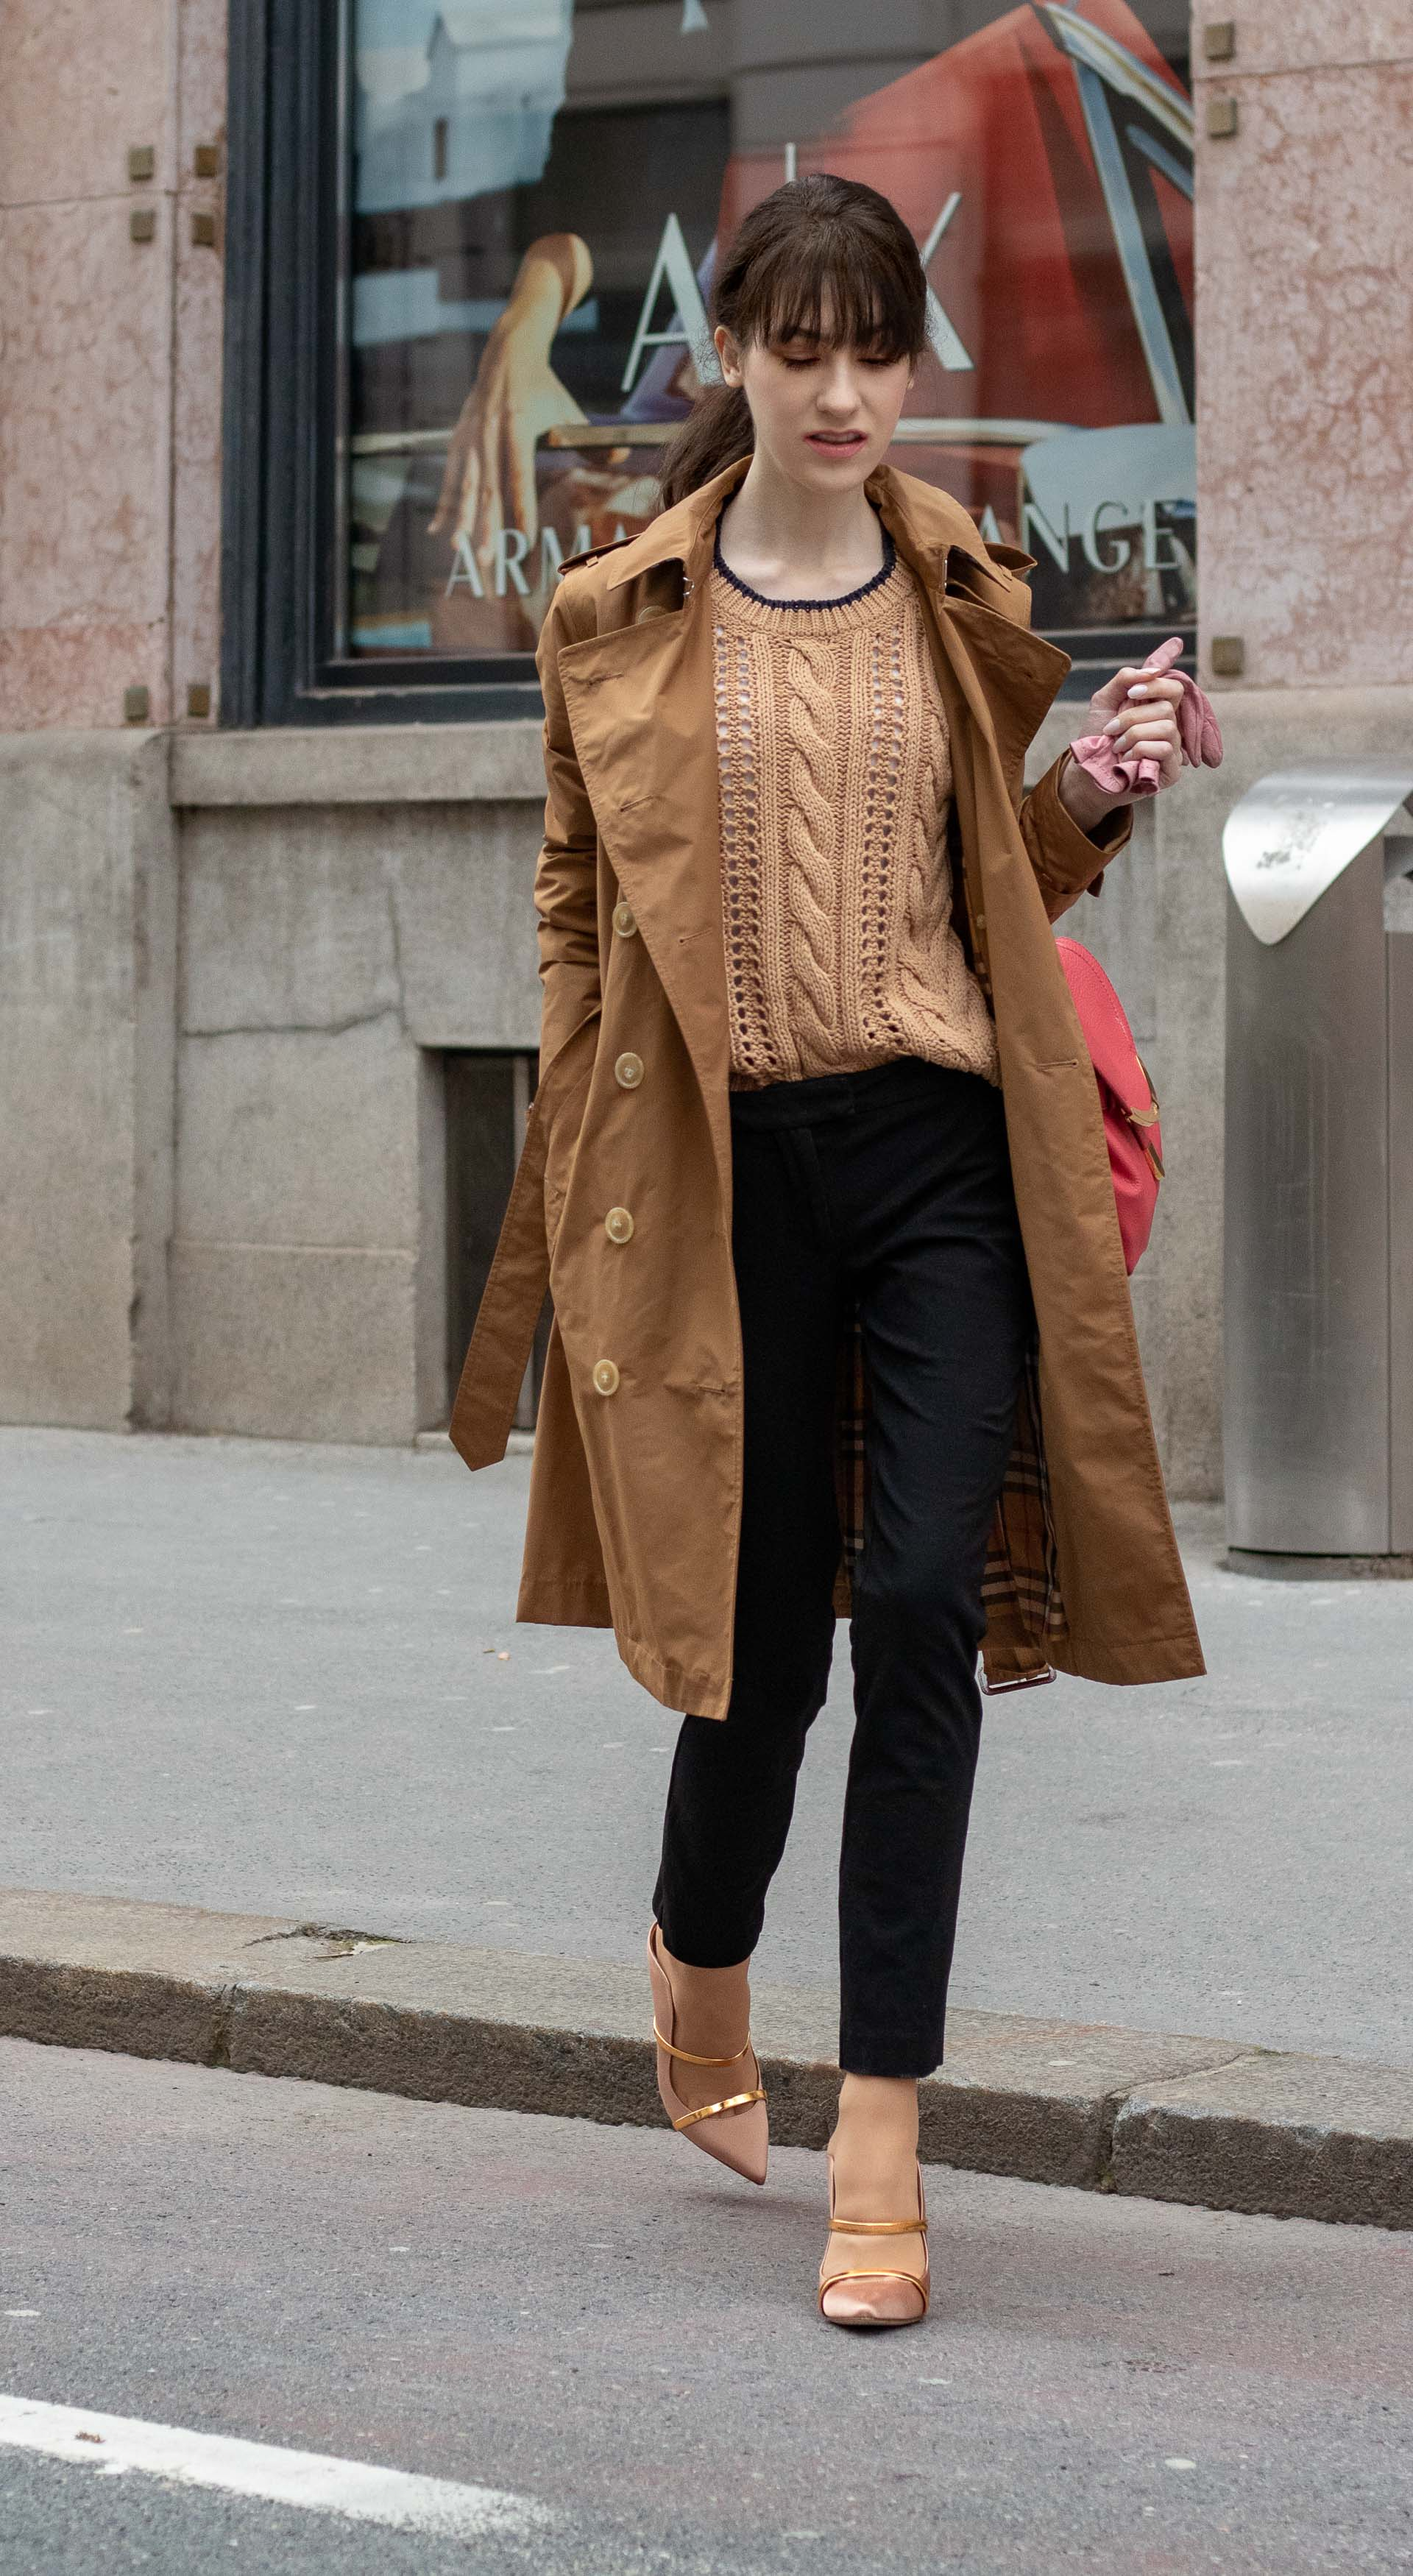 Must follow Slovenian Fashion Blogger Veronika Lipar of Brunette from Wall Street dressed in camel Burberry trench coat Mango cable knit sweater black slacks blush Malone Souliers mules pink top handle bag low ponytail bangs going to work